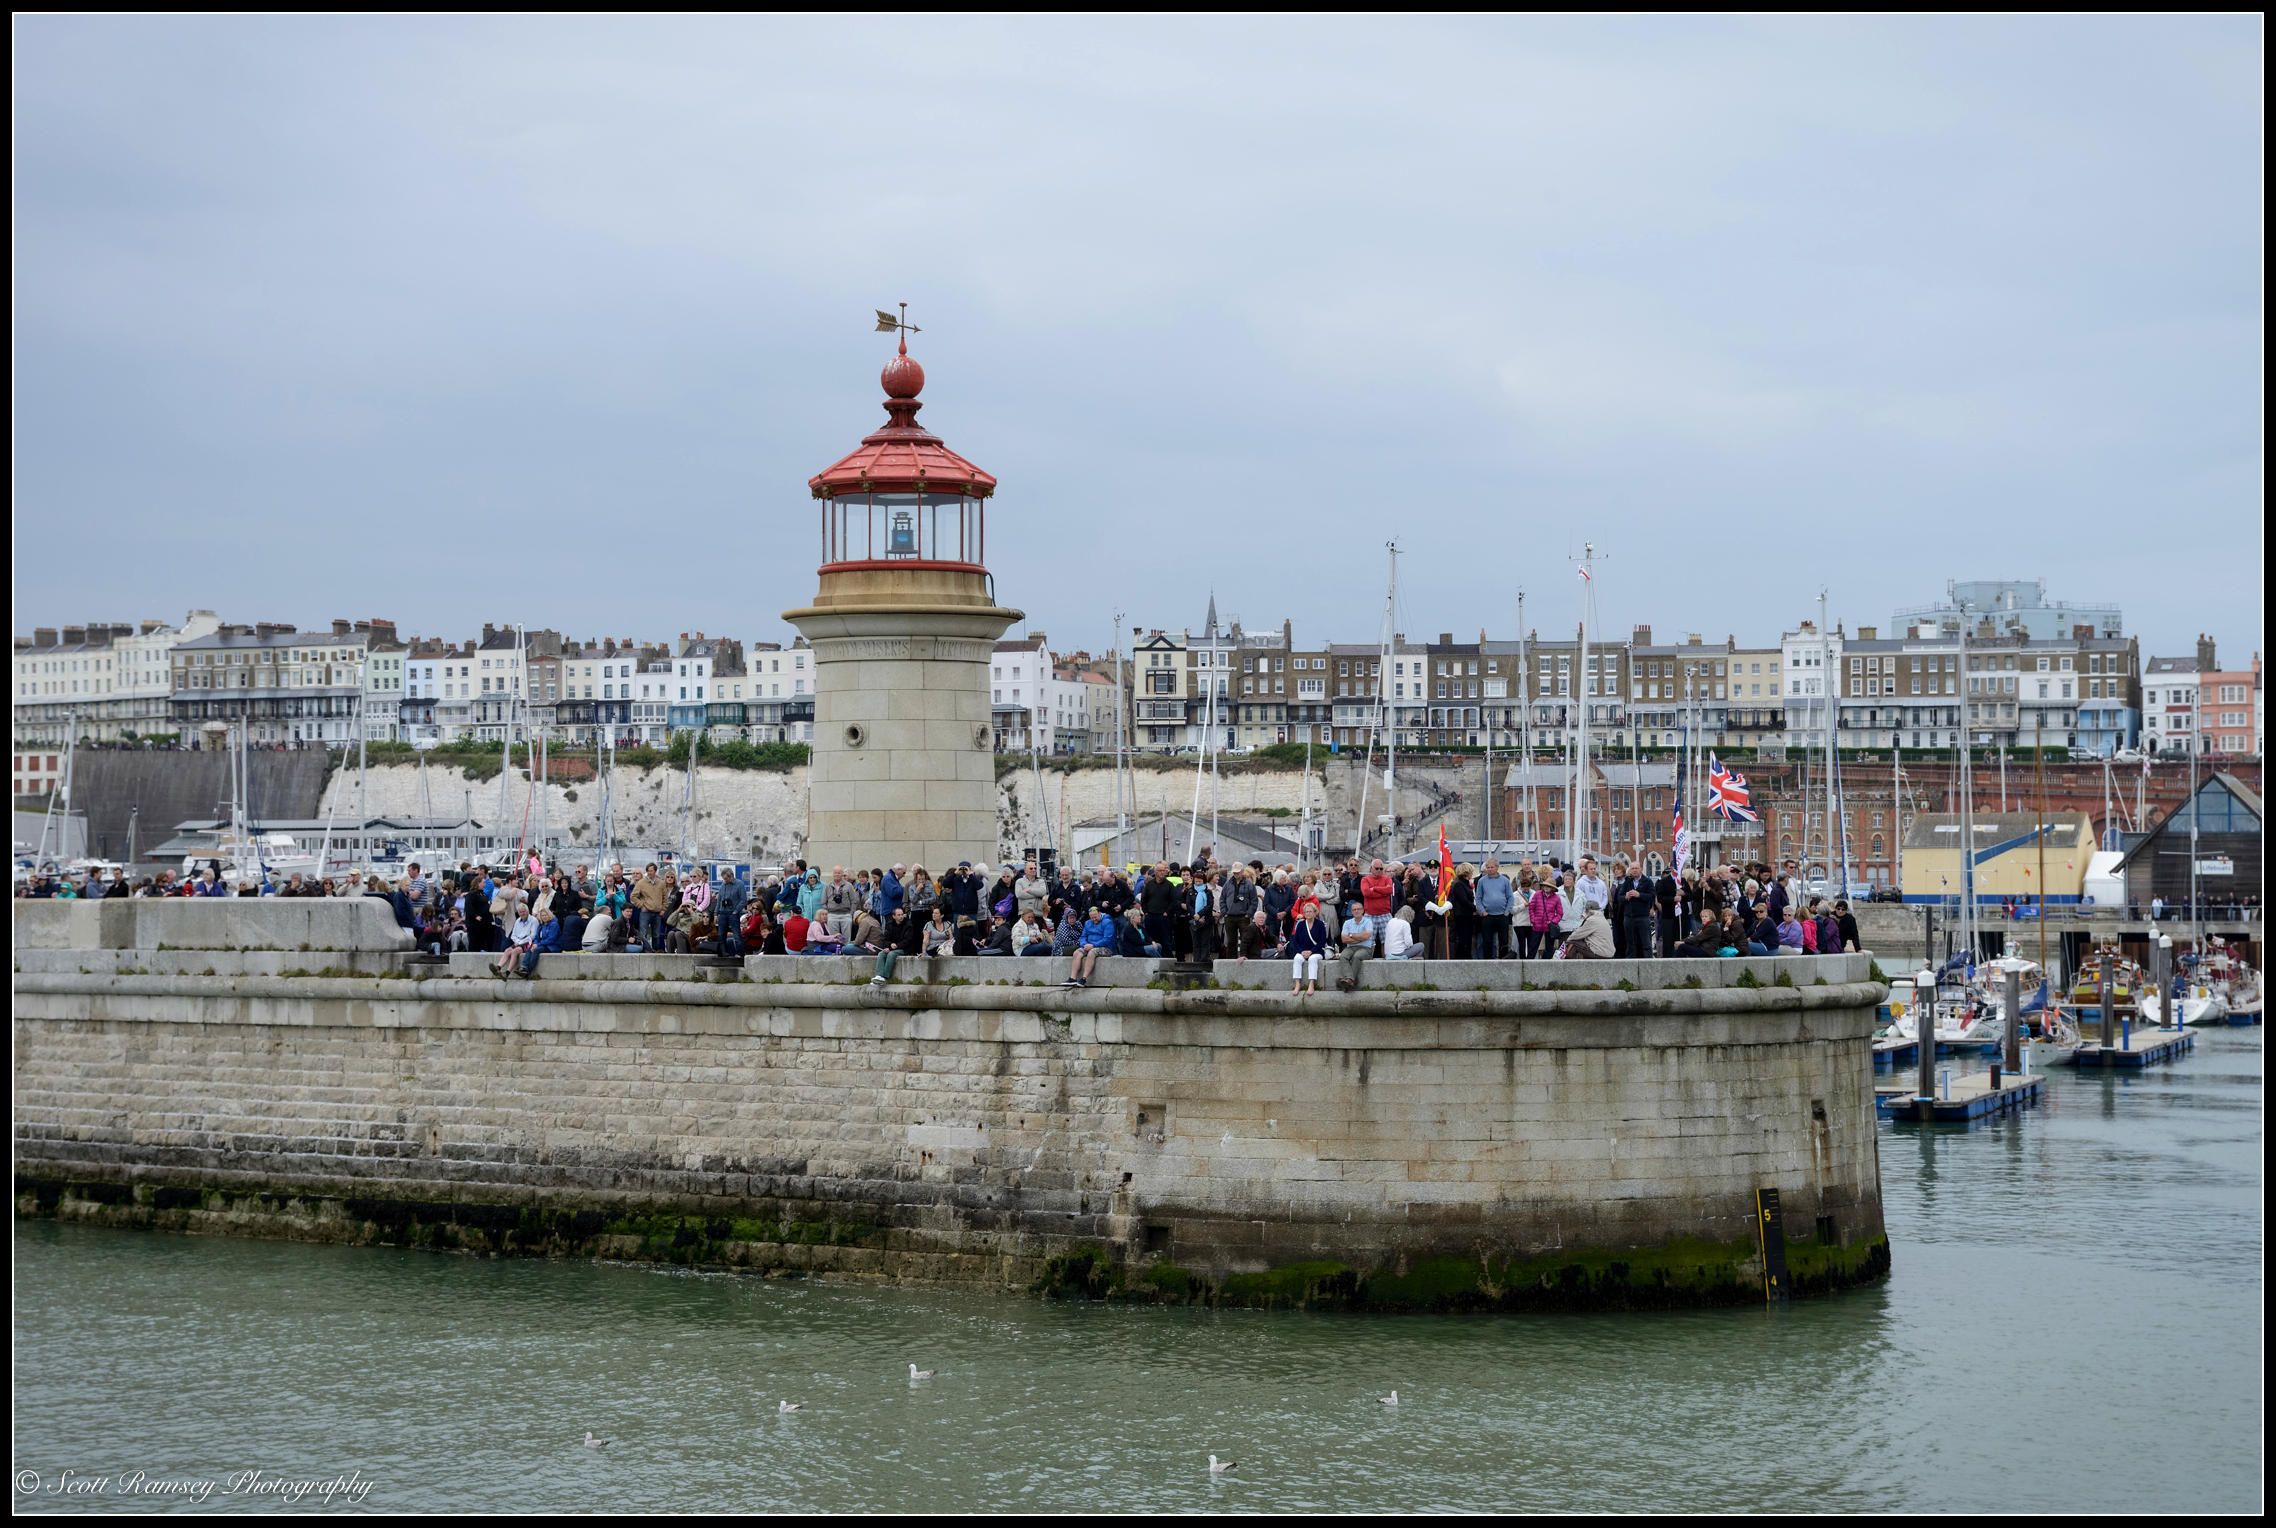 Spectators waiton the West Pier at the Royal Harbour Marina inRamsgate, Kent, UKfor the Dunkirk Little Ships to return during a weekend of events to commemorate the 75th anniversary of Operation Dynamo.©Scott Ramsey Photography